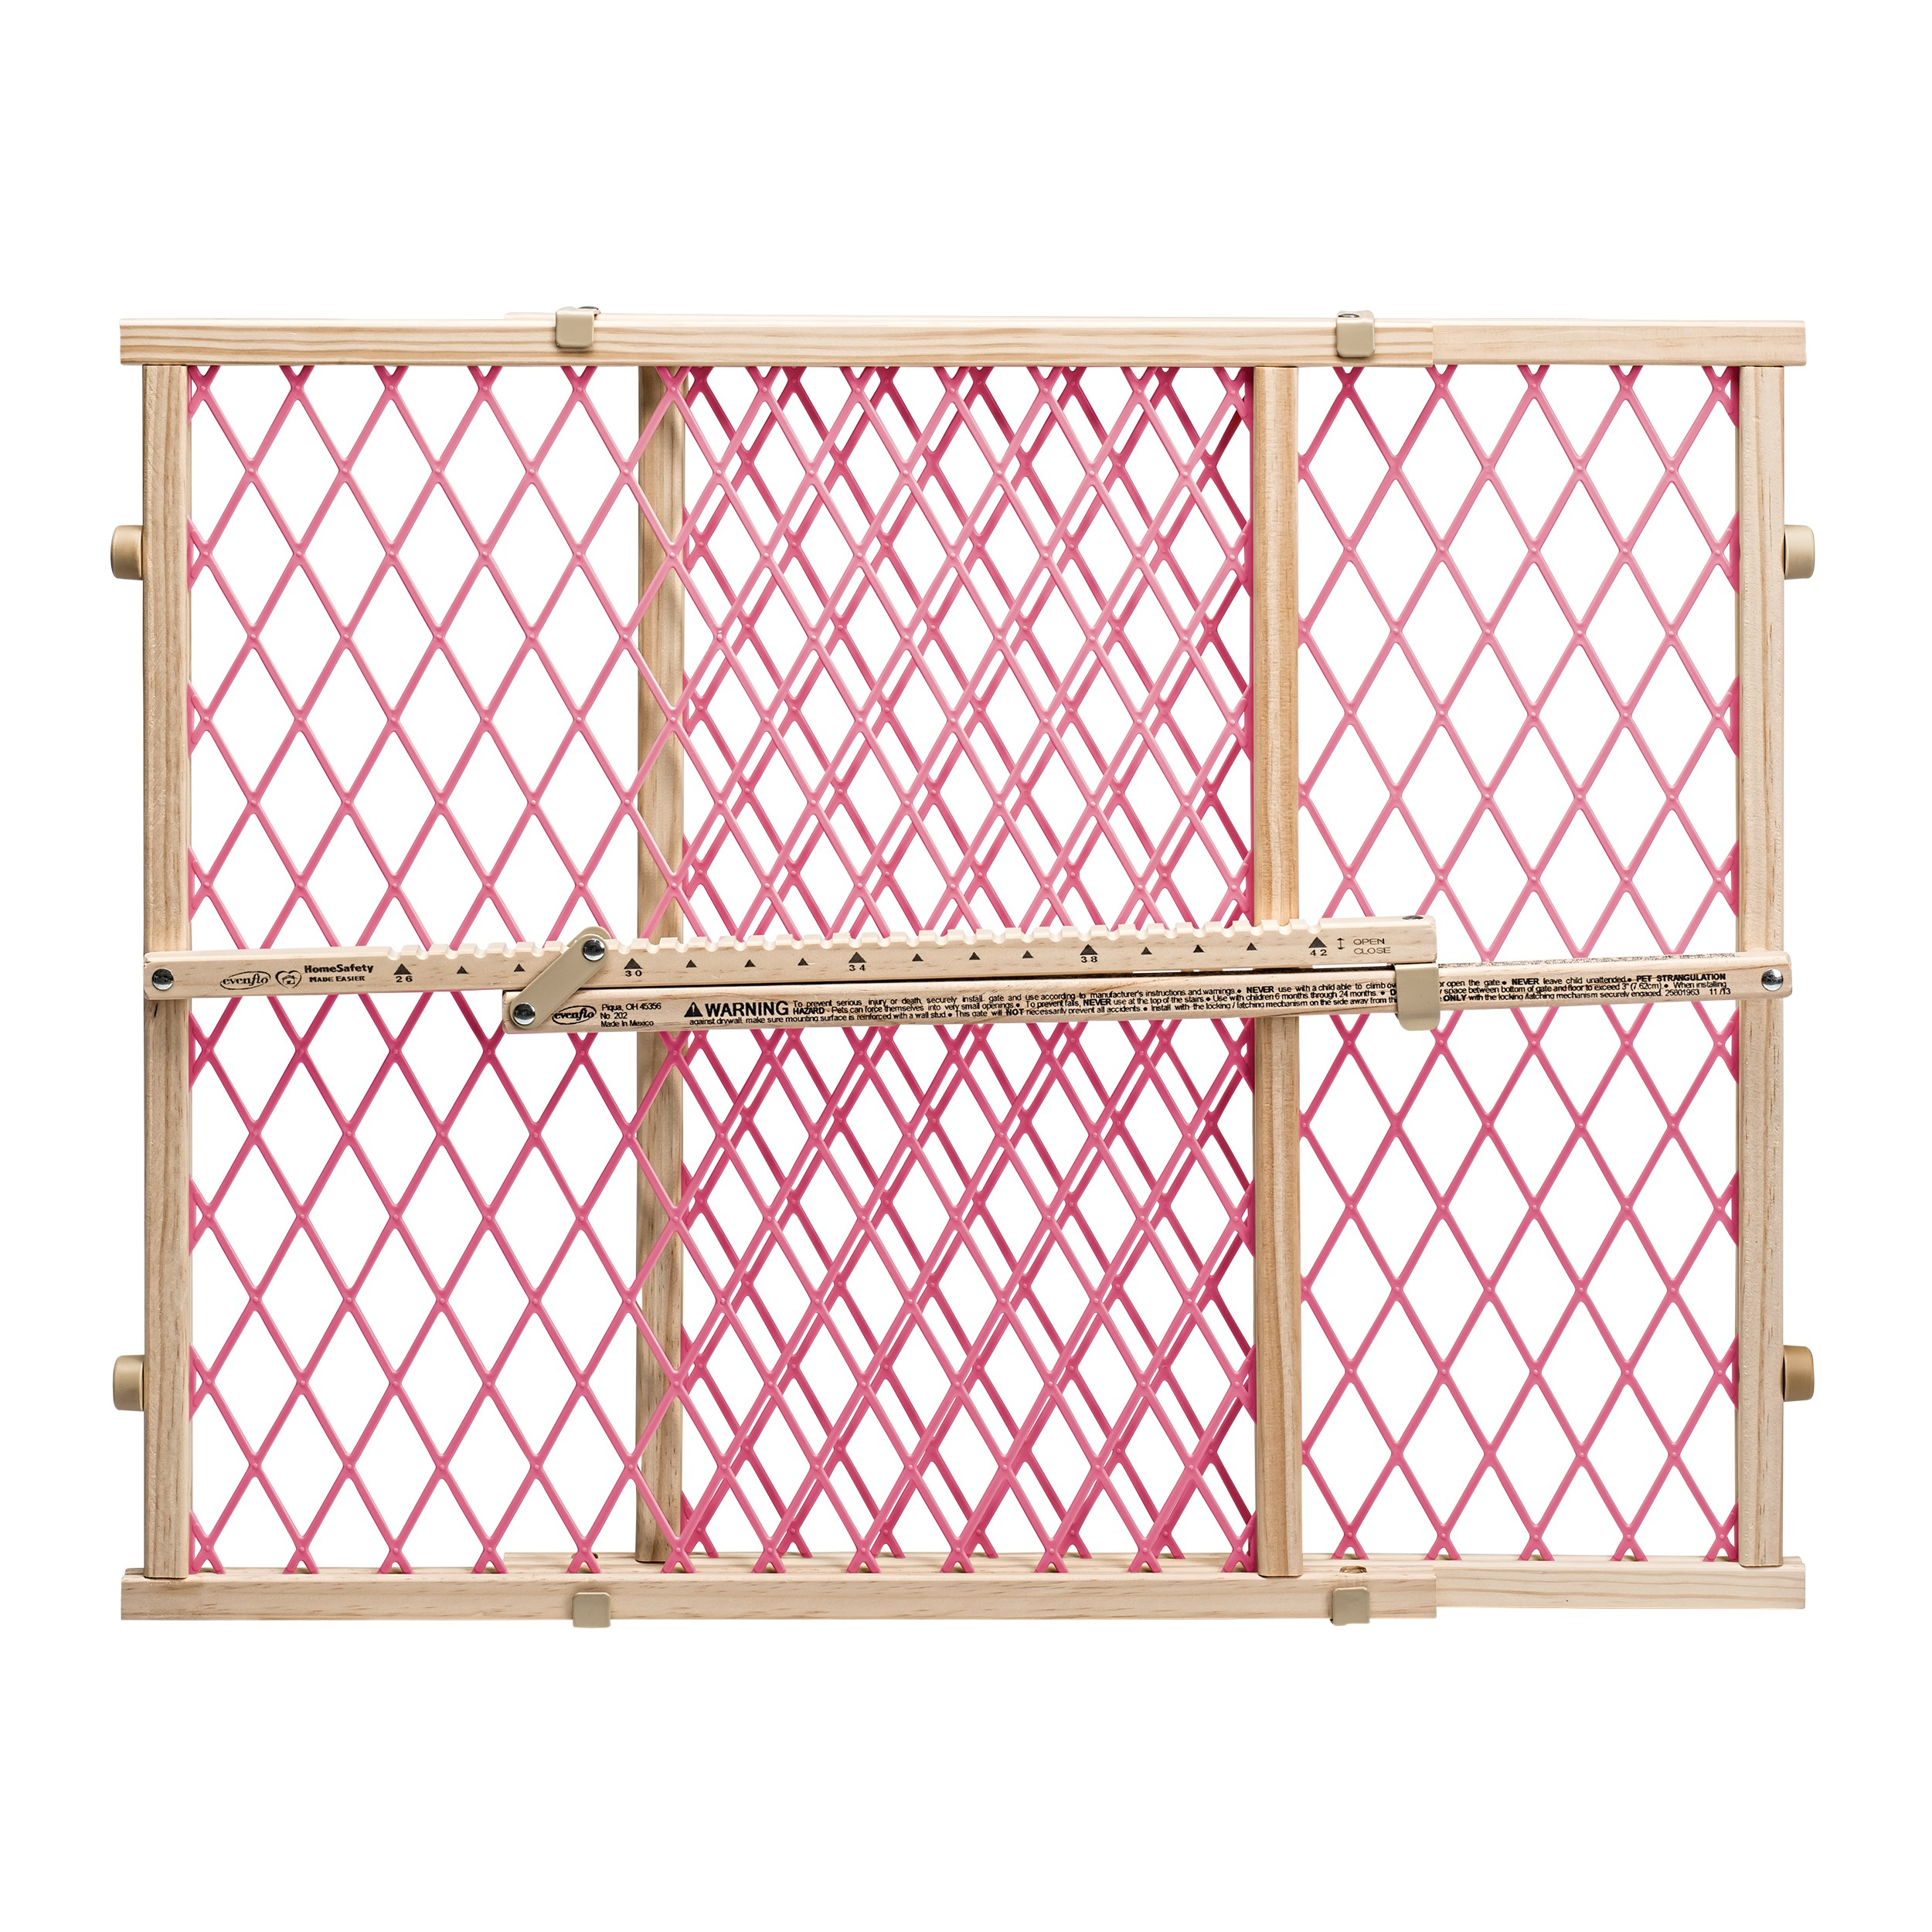 Evenflo Position Lock Classic Pressure Mount Gate 26 42 Fence For Transitional Putting Up Electric